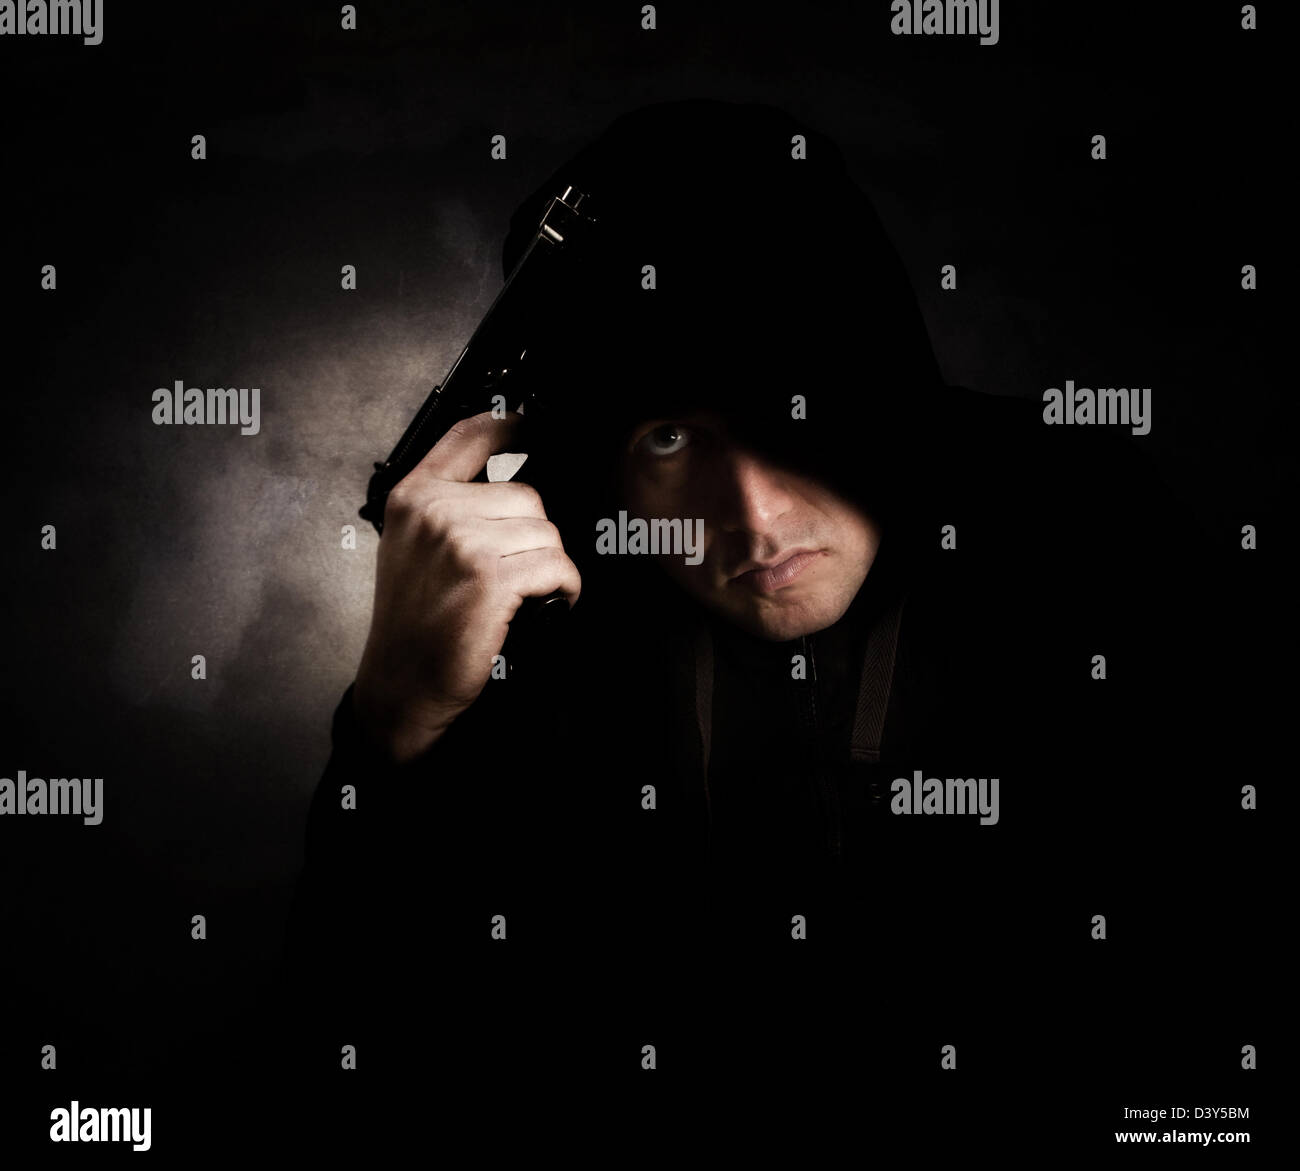 Gang member wearing a black hooded sweater holding a handgun in with an angry expression.Texture was added and also - Stock Image